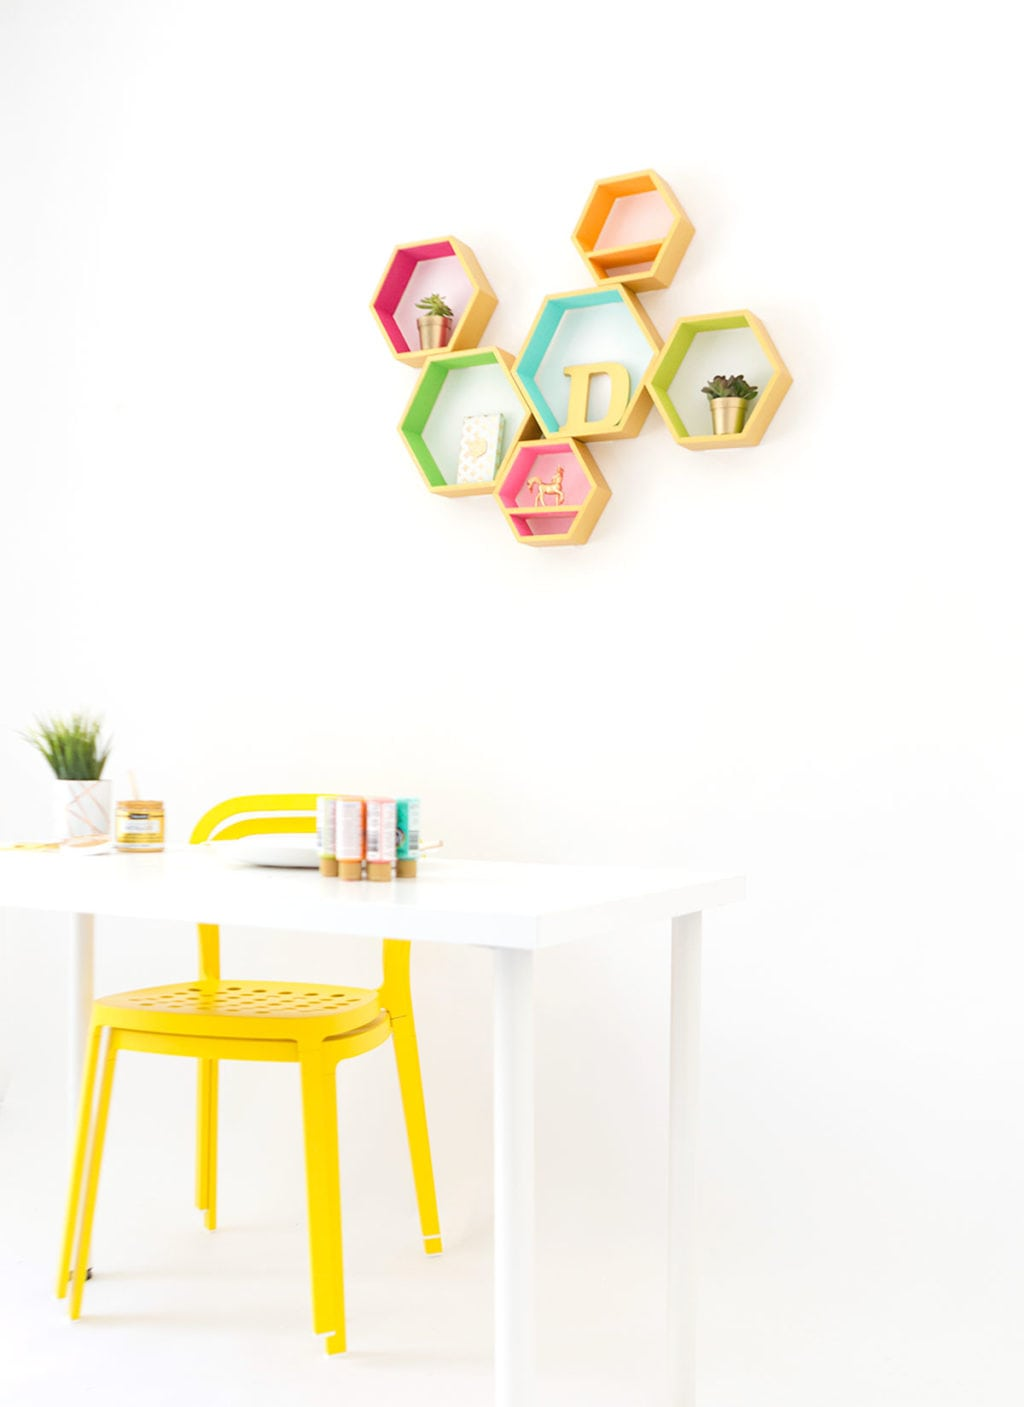 Create these DecoArt Metallic Hexagon Wall Shelves using DecoArt gold metallic paints to add perfect shimmer to your office walls.